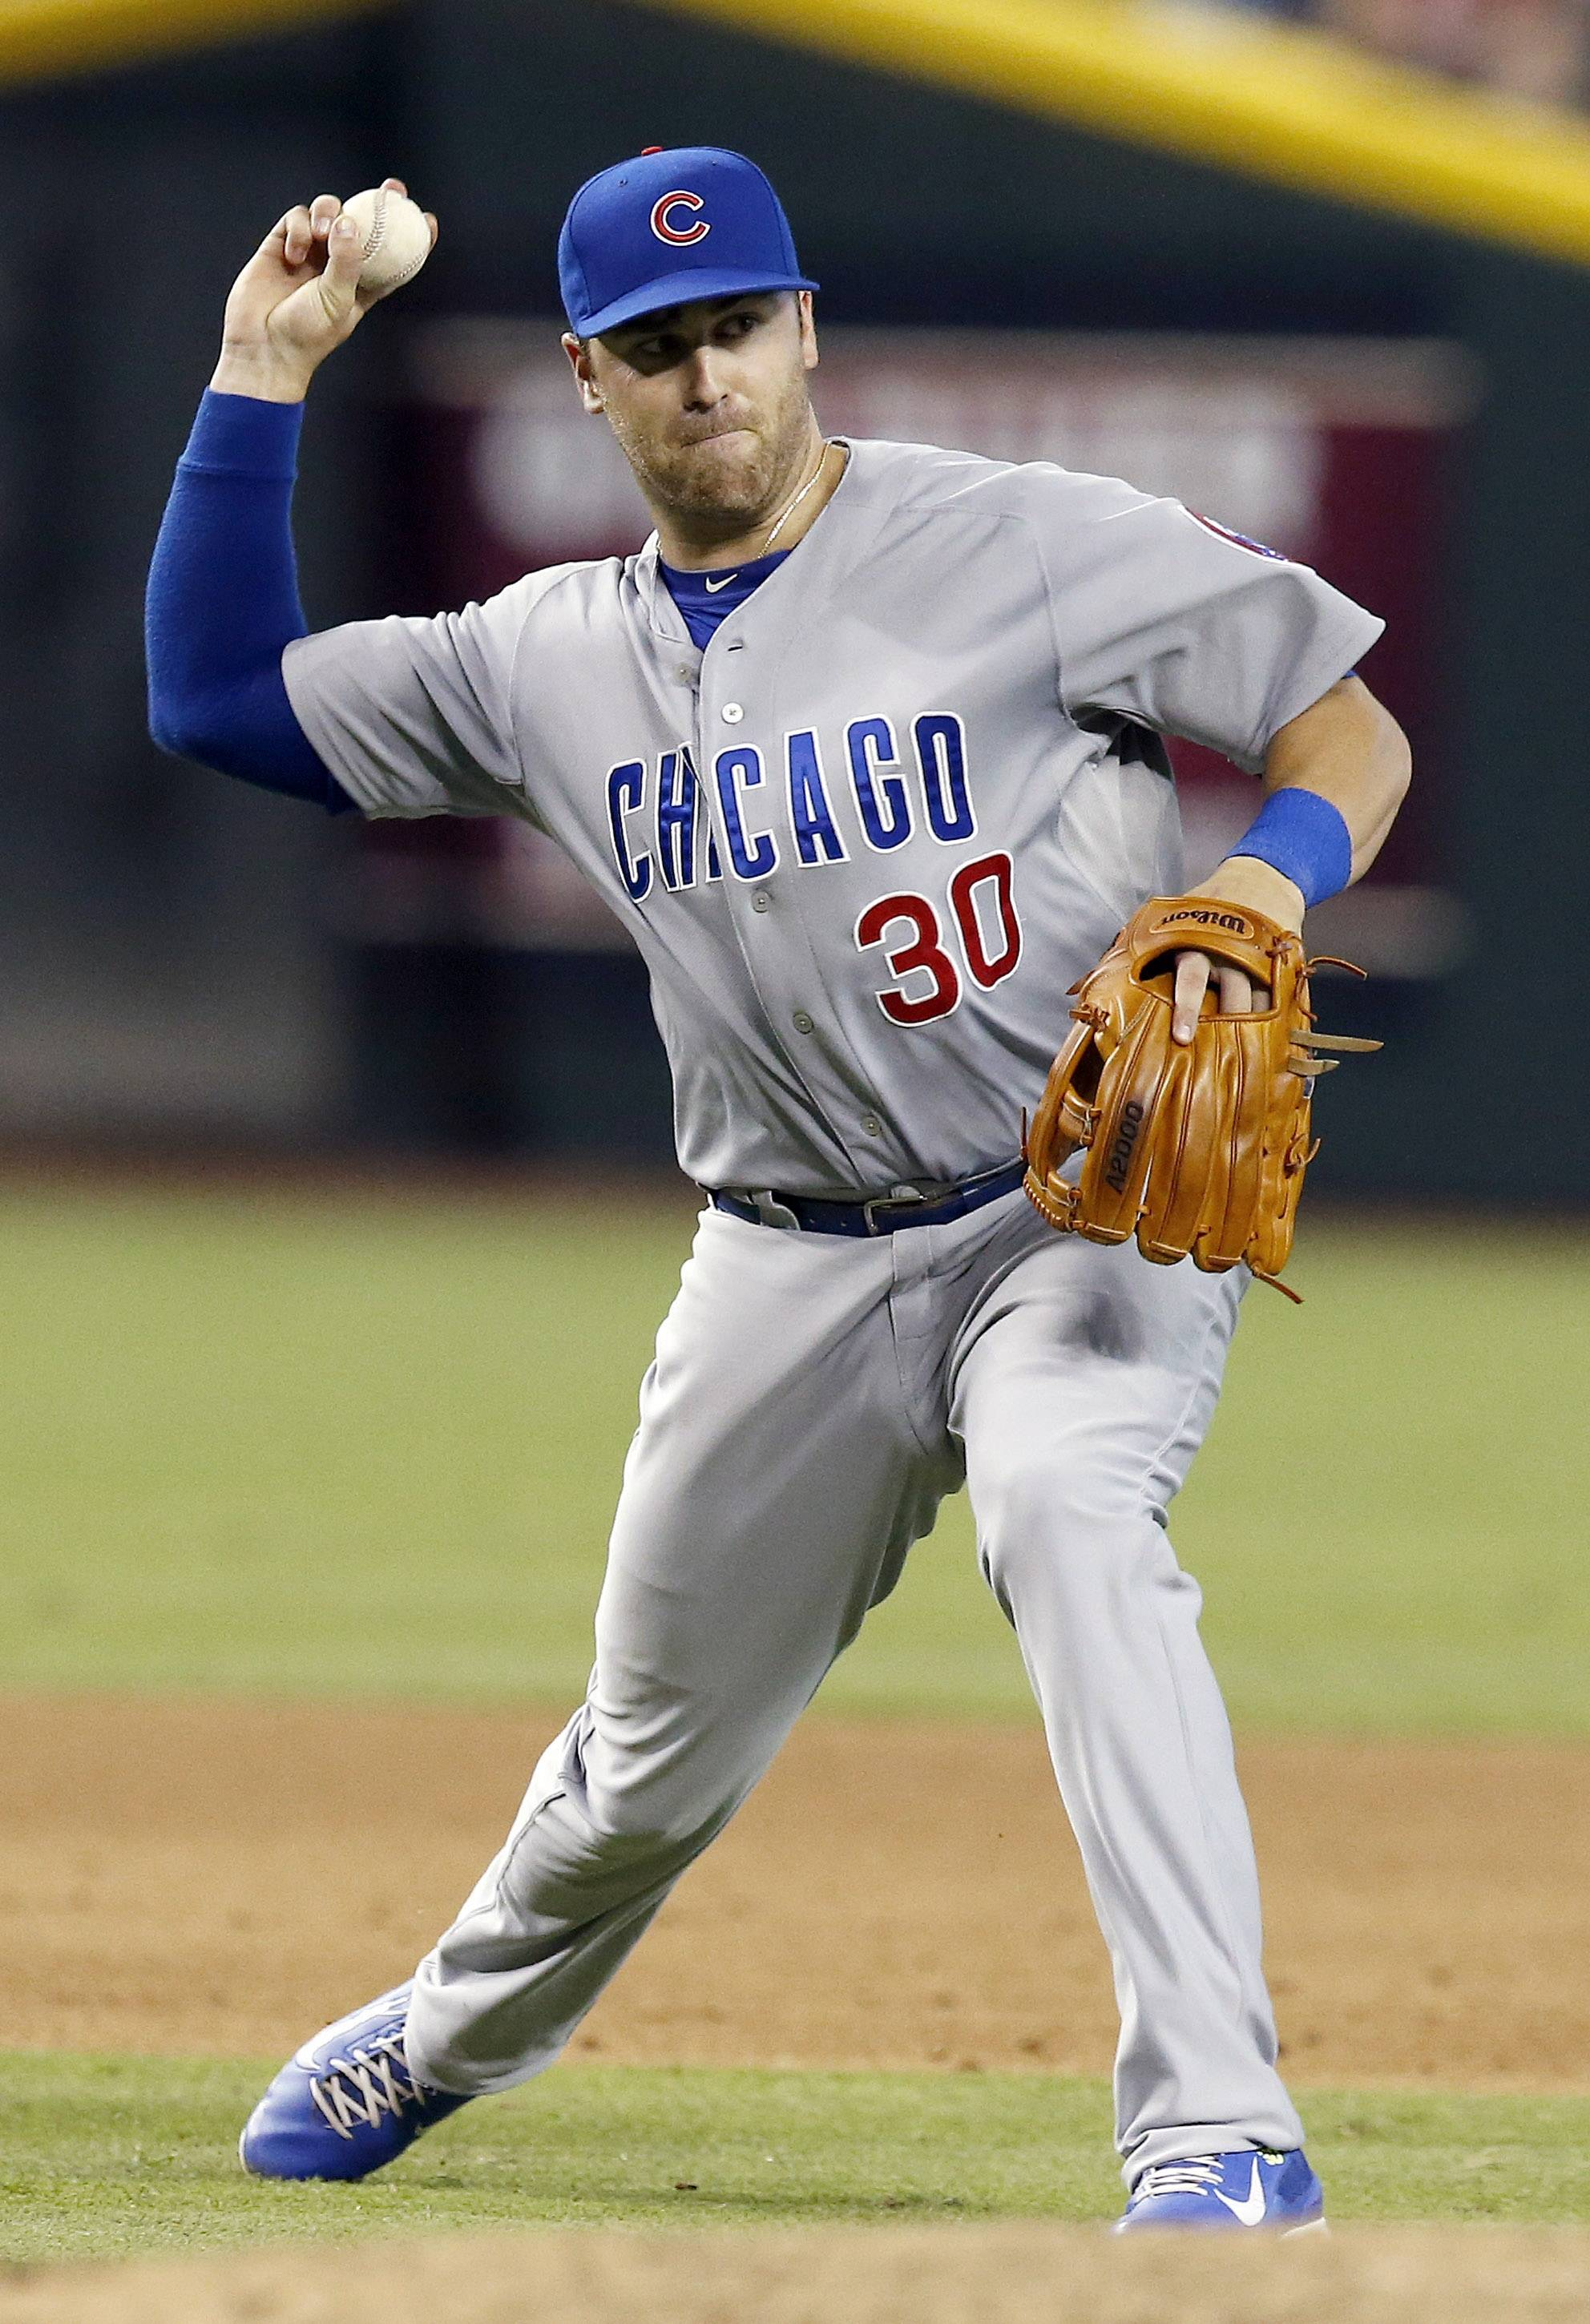 The Cubs had little choice but to send struggling third baseman Mike Olt to the minor leagues. They did that after Tuesday night's game, optioning Olt to Class AAA Iowa.  Olt went 0-for-4 in that game, as his season hitting line dropped to .139/.222/.353 with 12 home runs and 30 RBI. However, Olt struck out 84 times in 212 plate appearances for a strikeout rate of 39.6 percent.